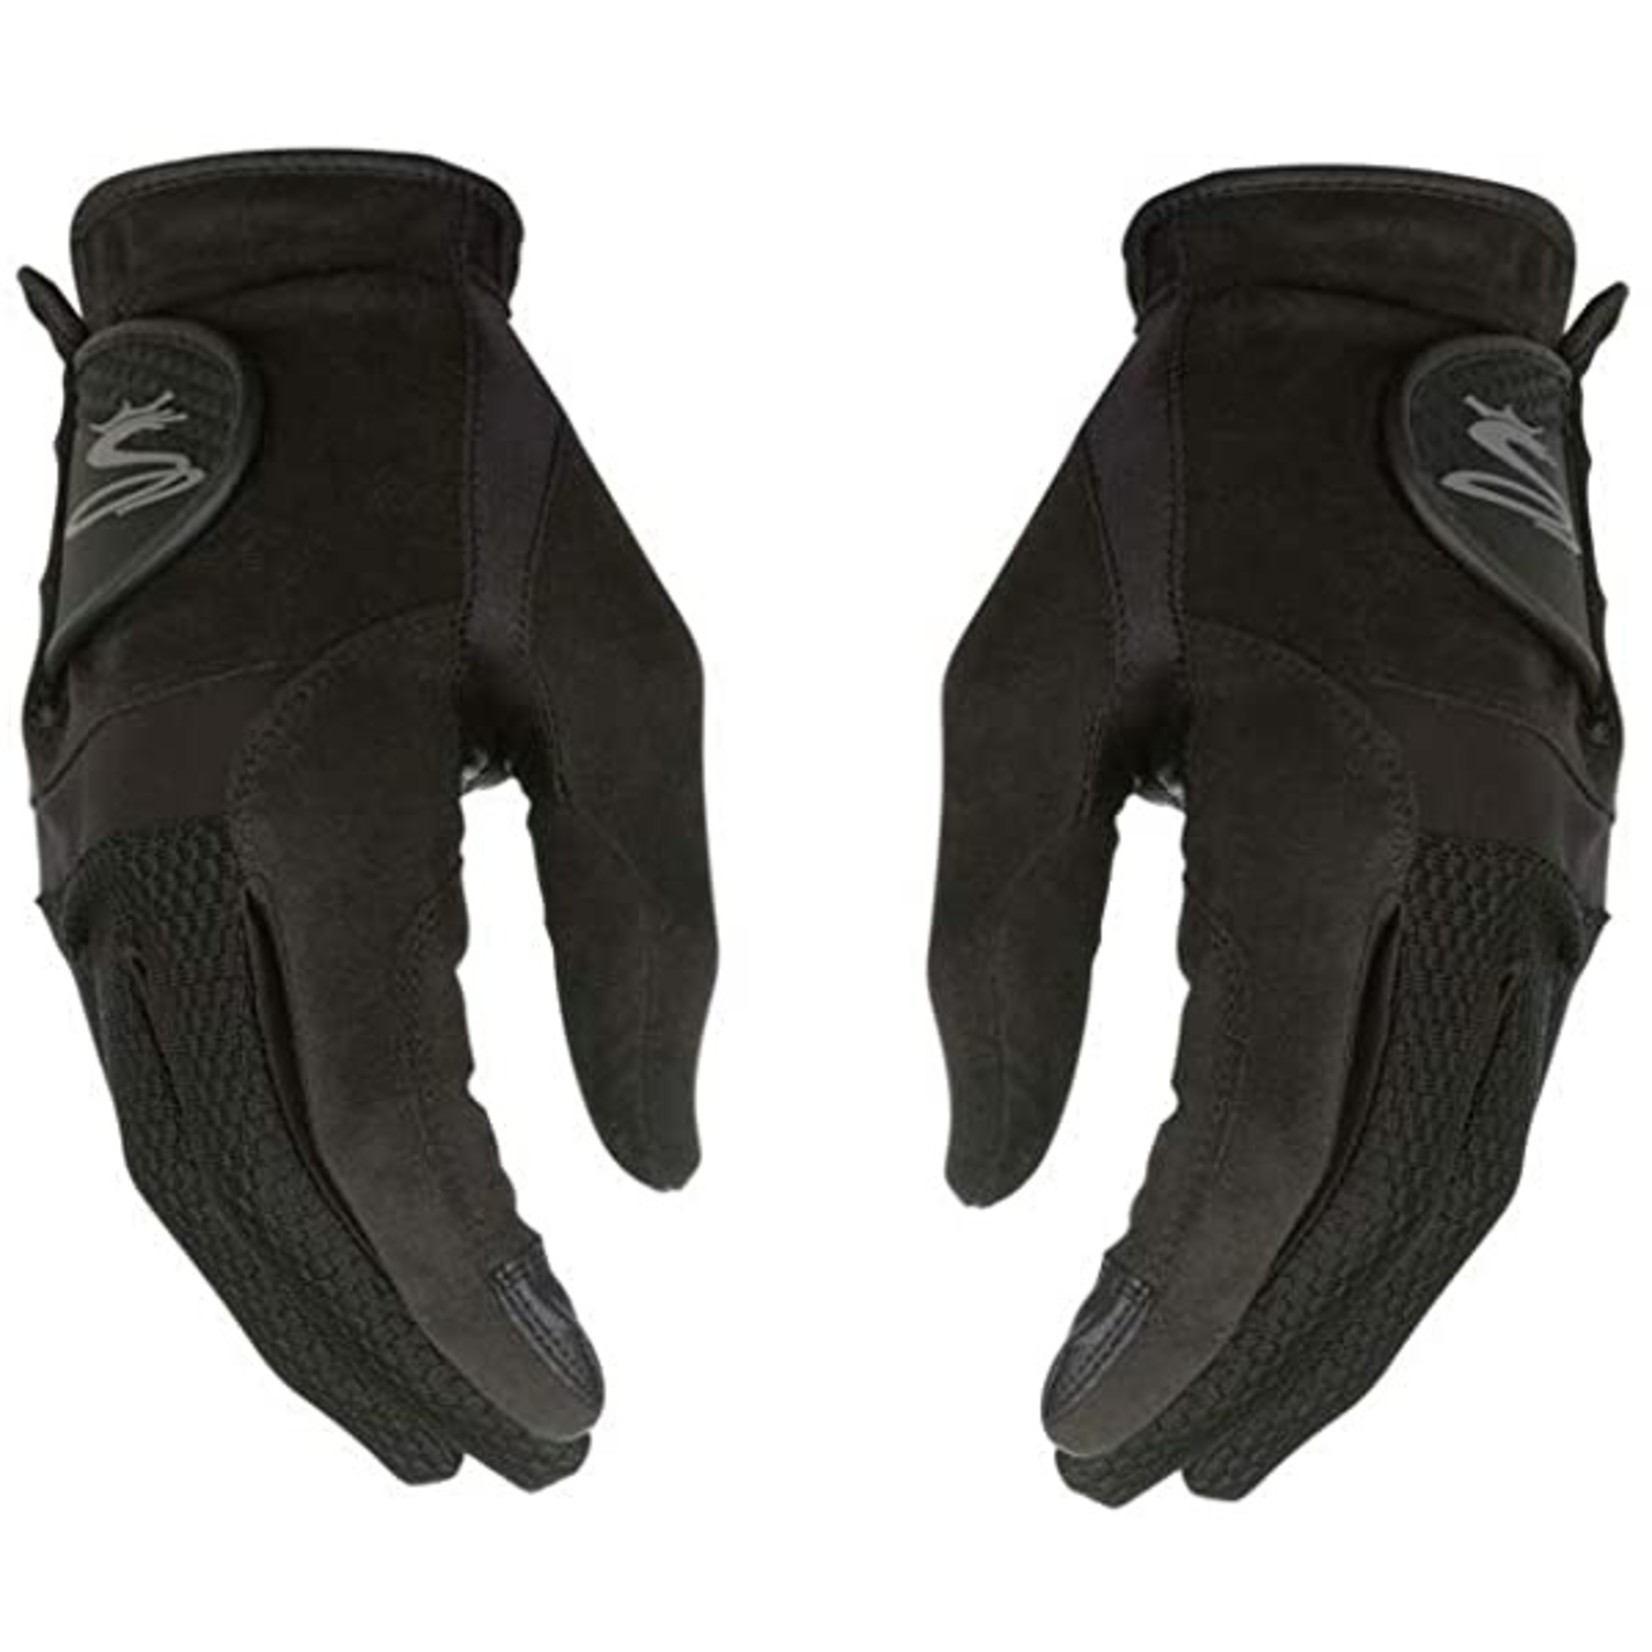 Cobra Cobra Winter Gloves